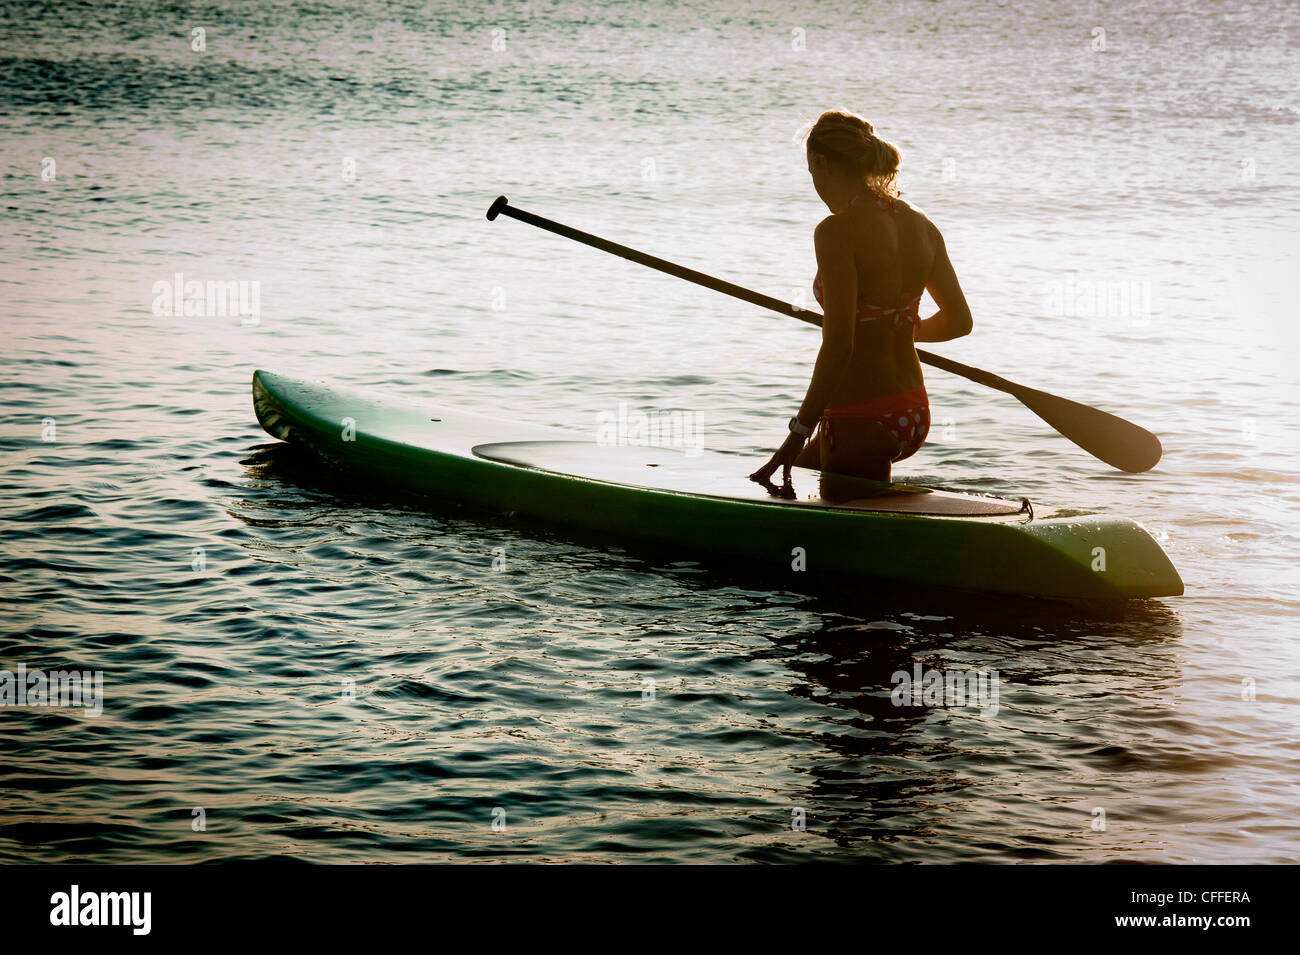 A woman enjoys her stand up paddle board. - Stock Image